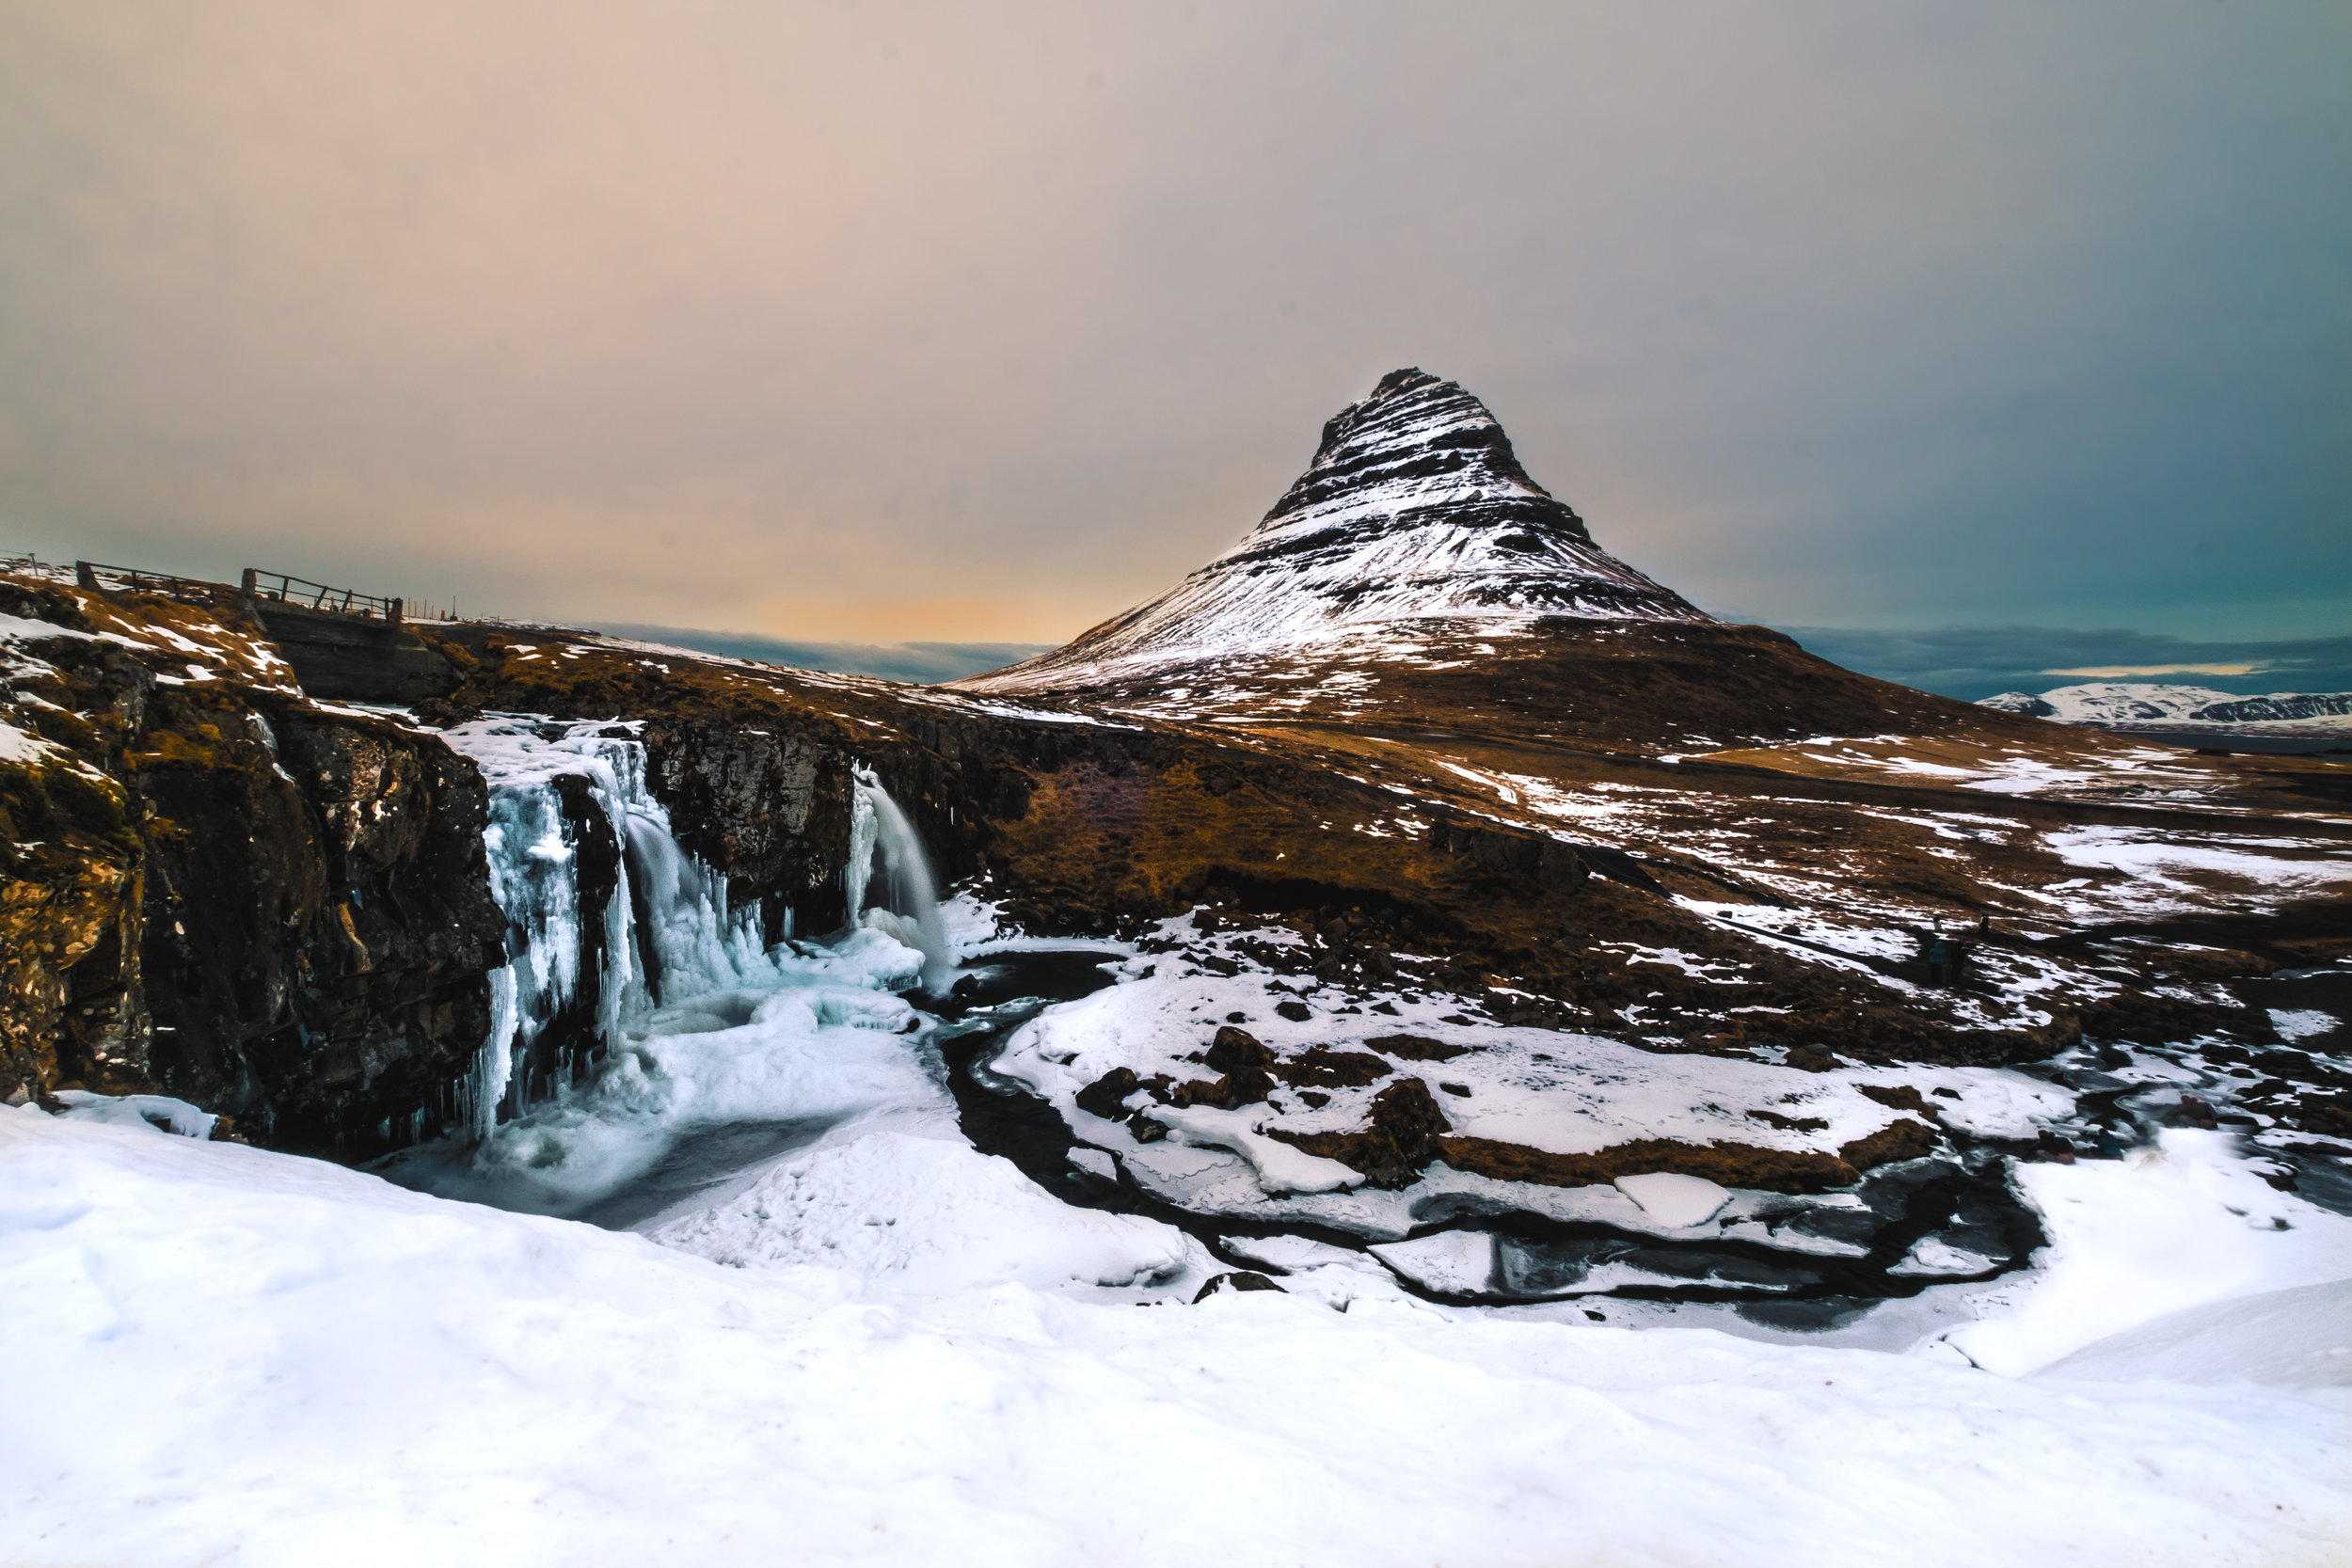 6 hours after leaving Akureyri, we arrived at the final stop on the trip; Kirkjufellfoss. Since I'd seen so many great photos of this place before coming, this was the first place i put on my map. A great way to end a great journey...